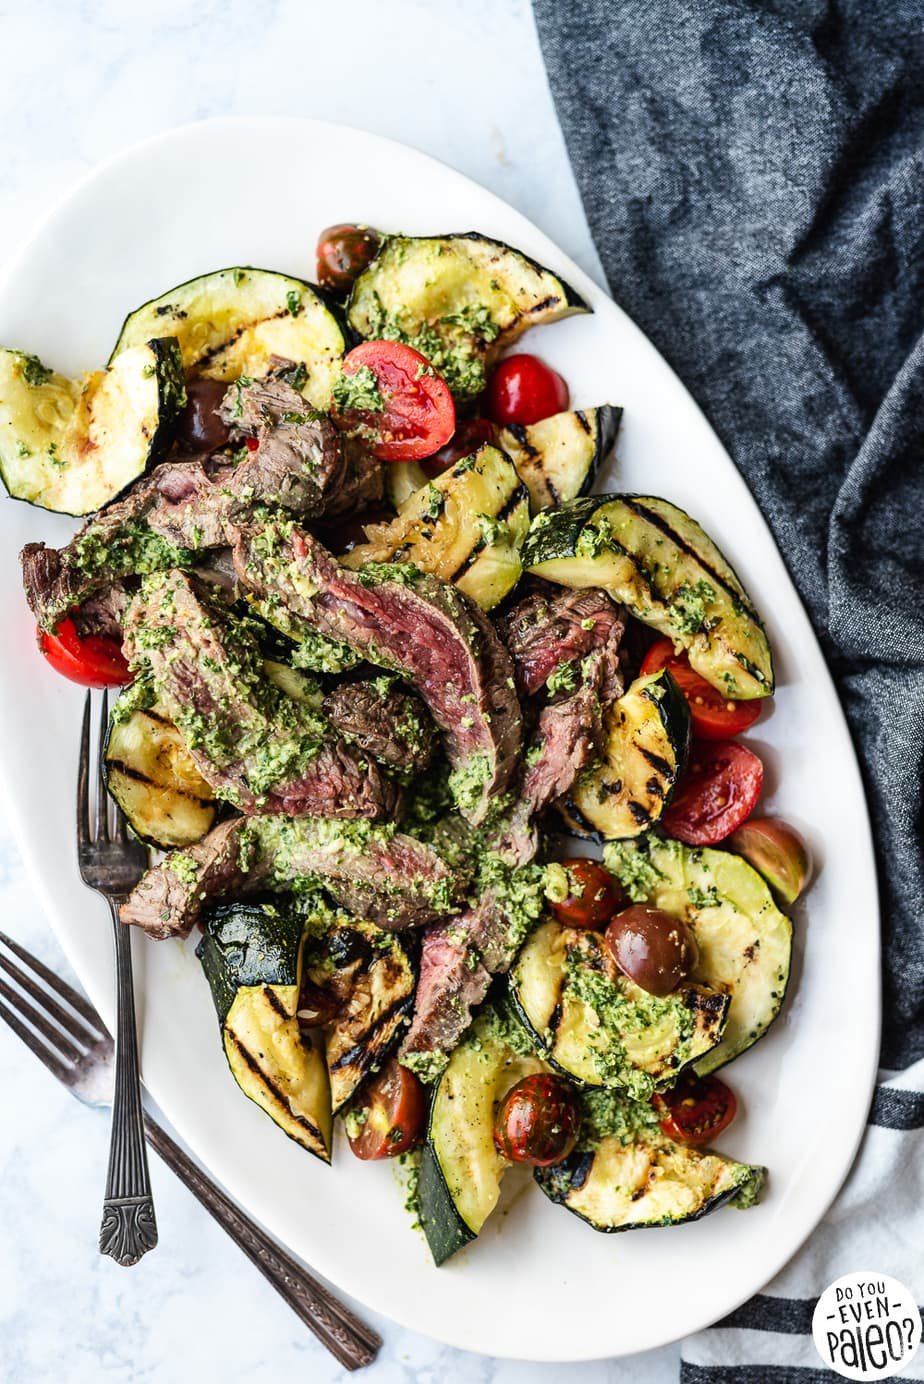 Grilled Steak, Zucchini, and Pesto Salad | Gluten Free Recipe by DoYouEvenPaleo.net